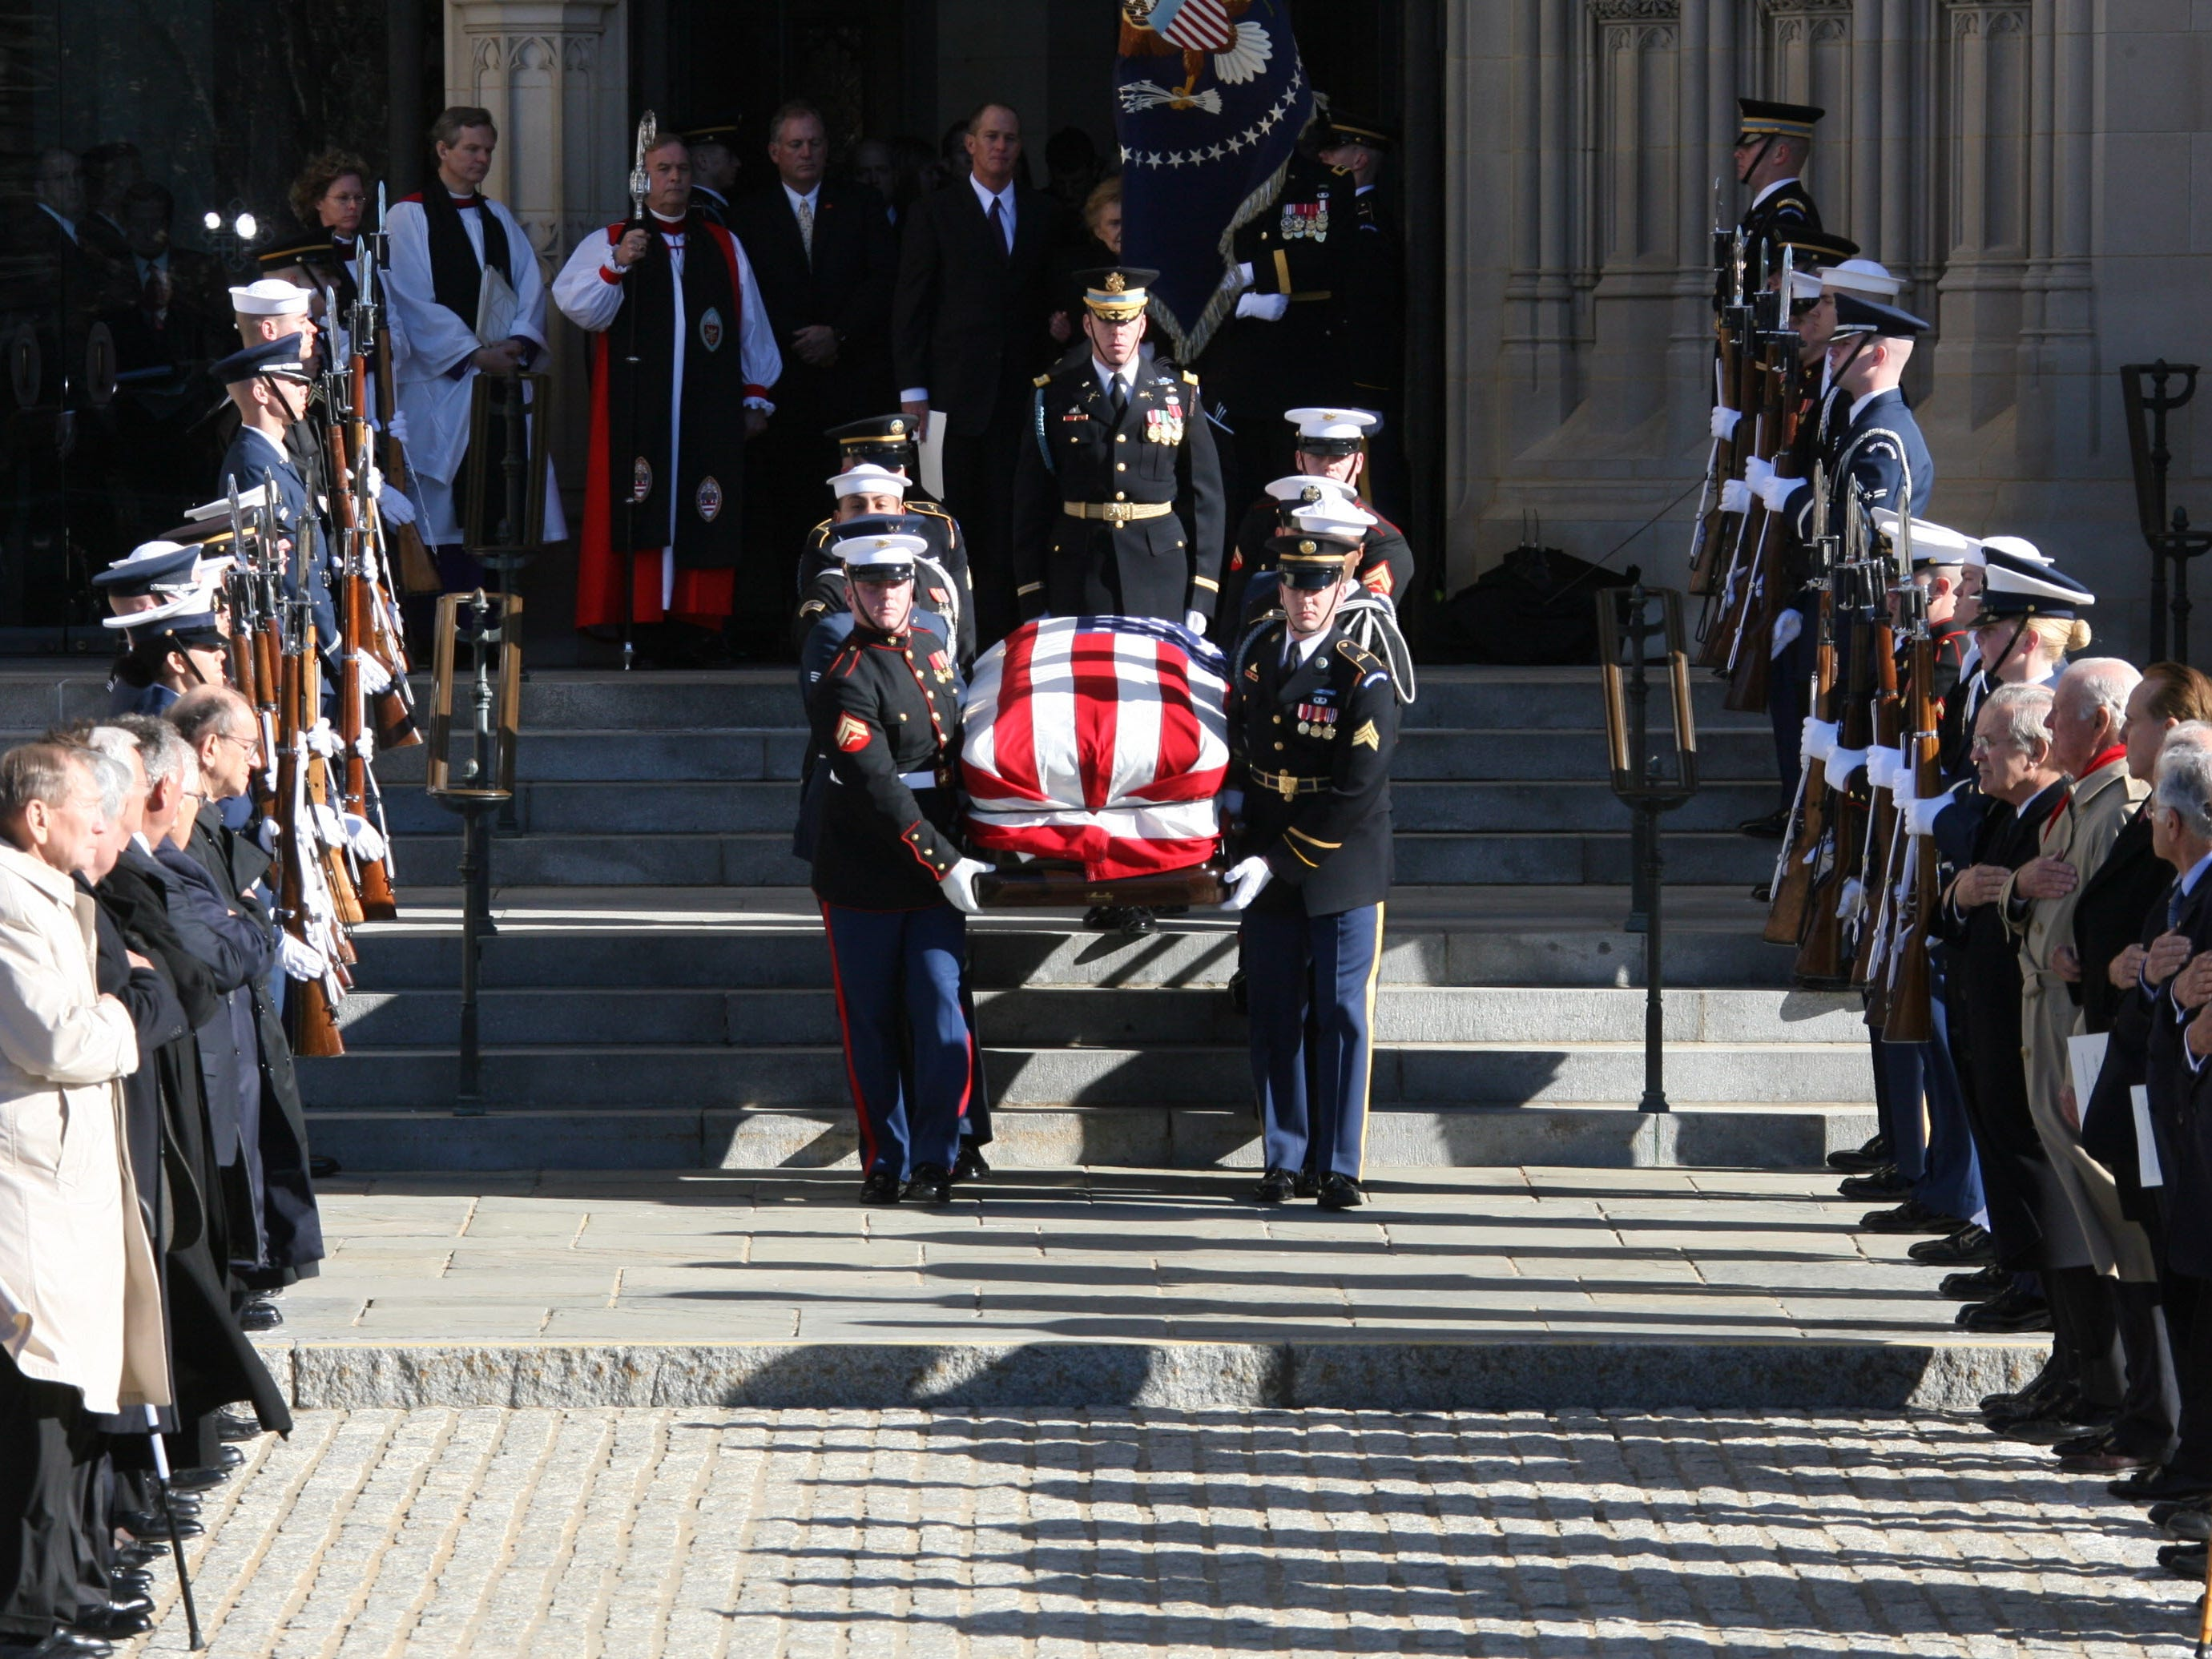 The casket of former president Gerald Ford is carried from the National Cathedral in Washington, D.C., after services on Jan. 2, 2007.